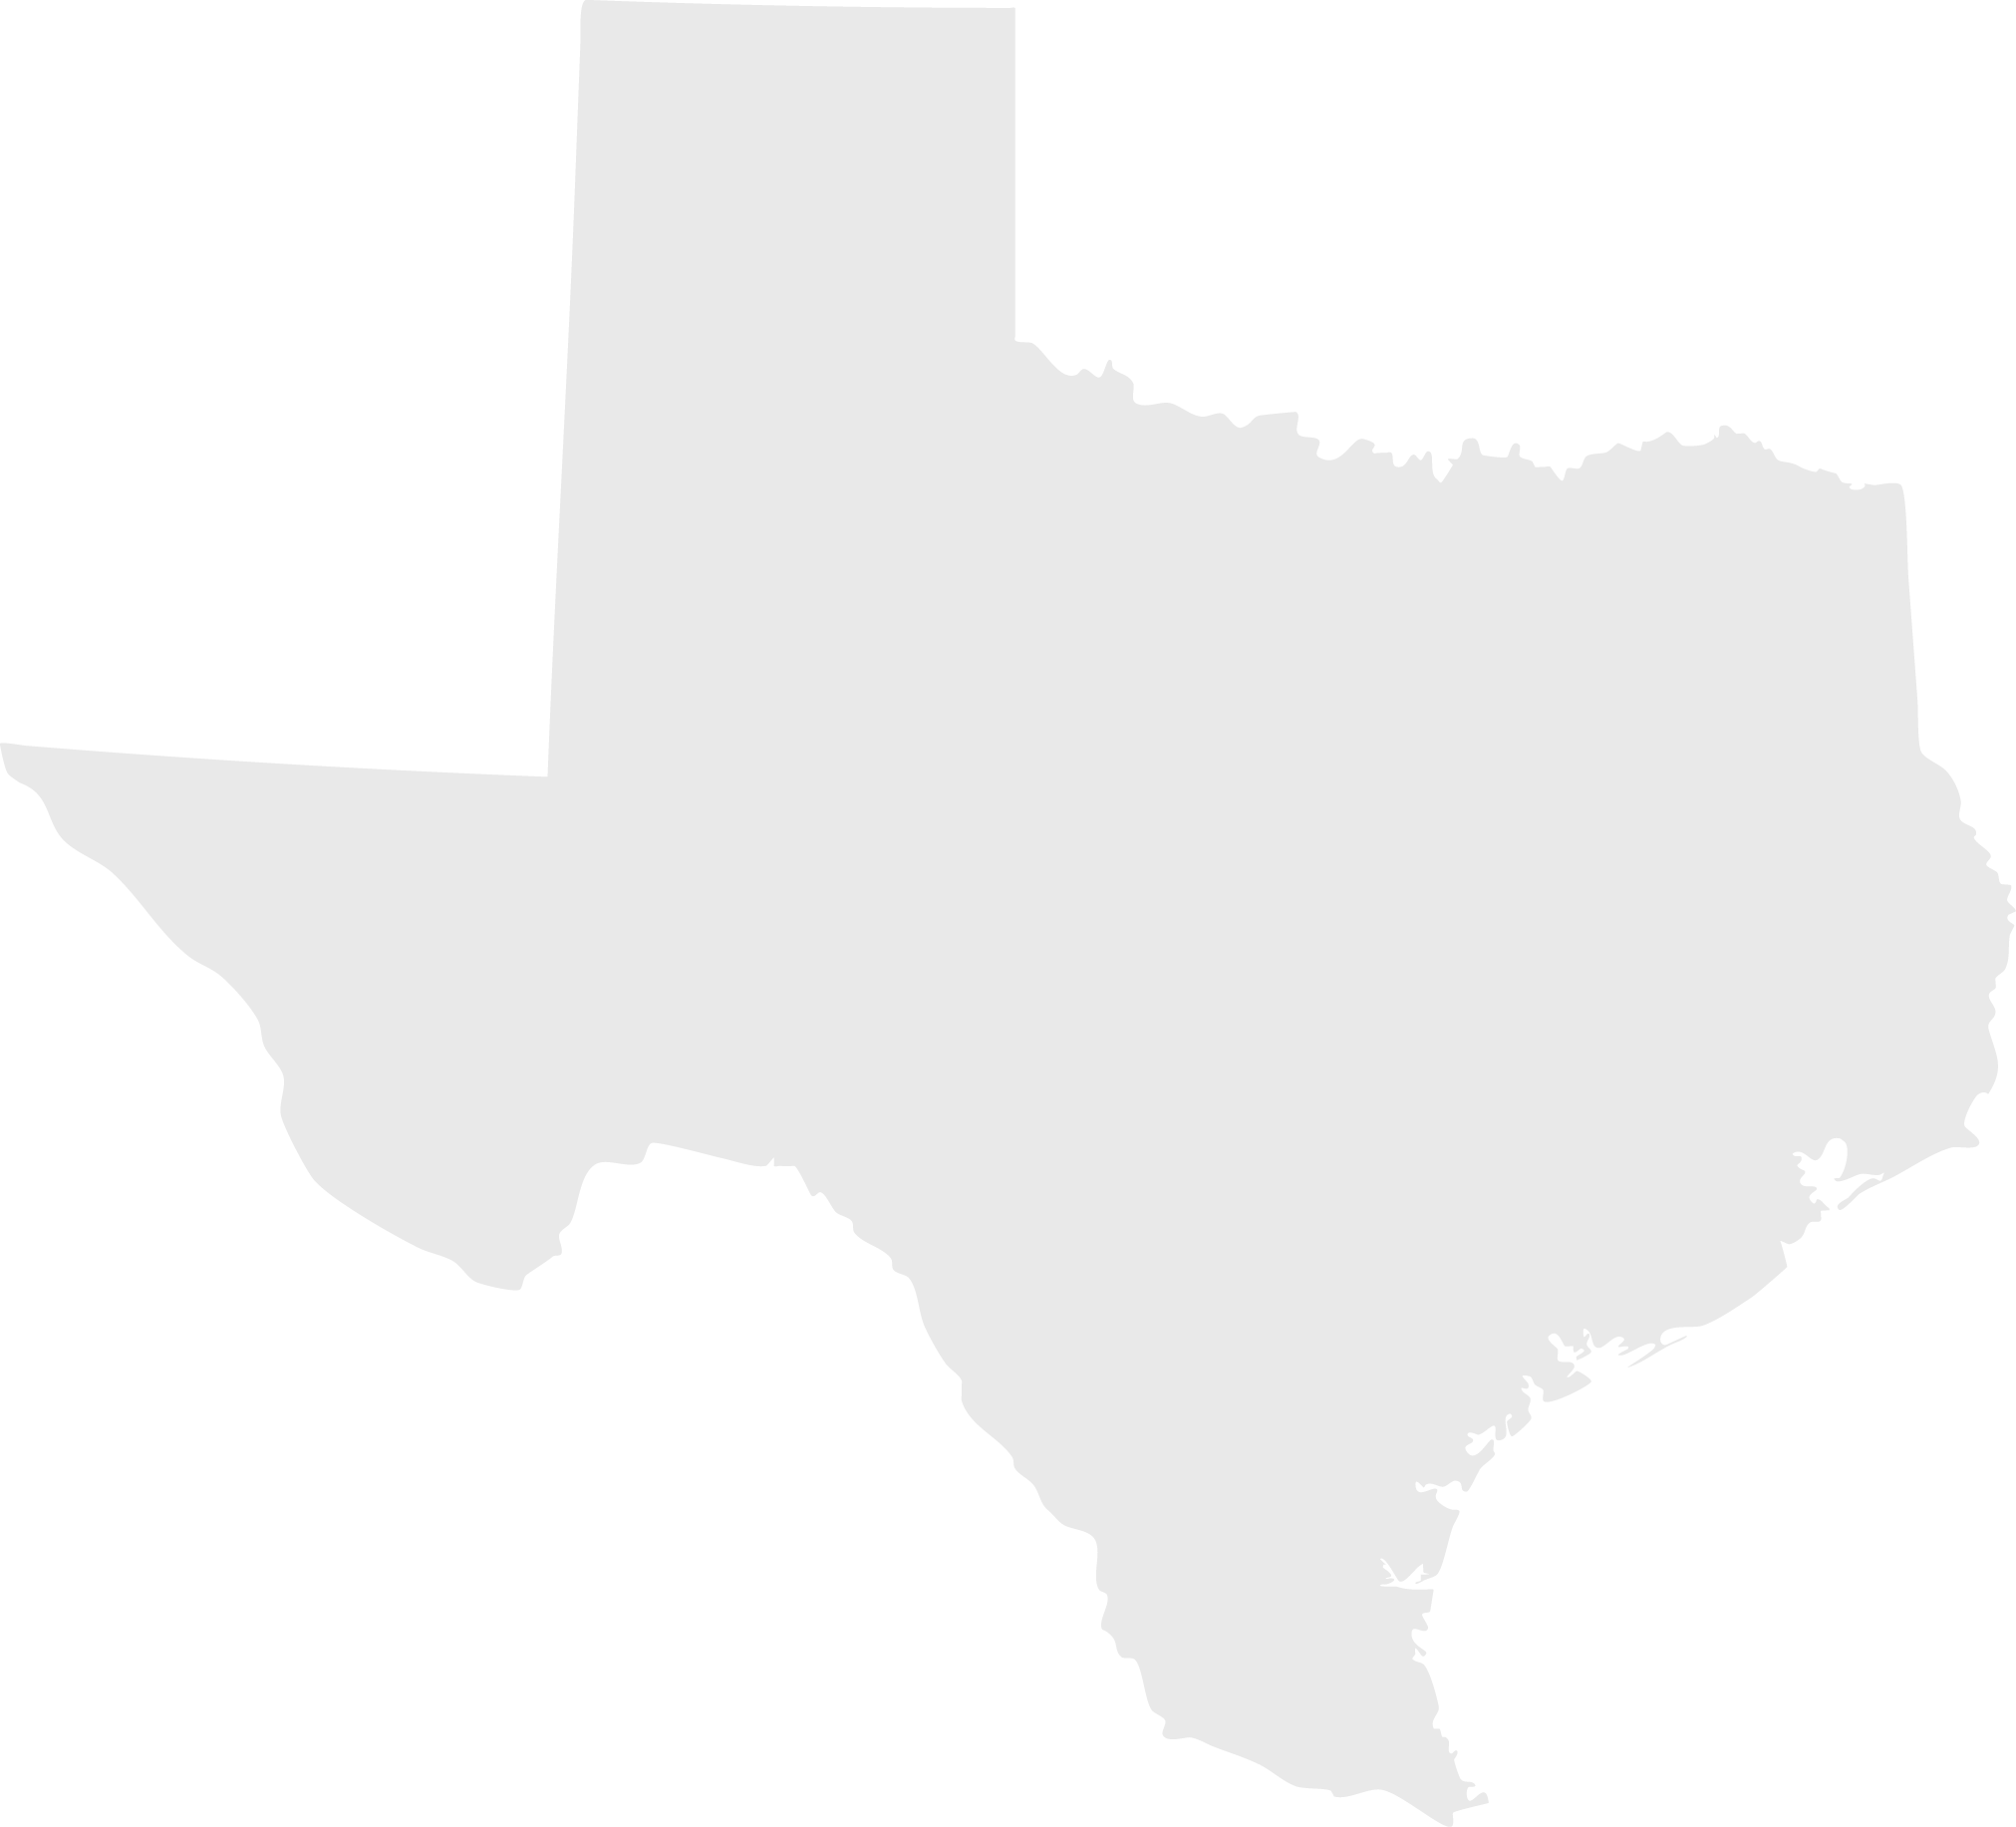 Texas lone star clipart clip free stock Lilly & Company | Political Consulting Firm - Home clip free stock